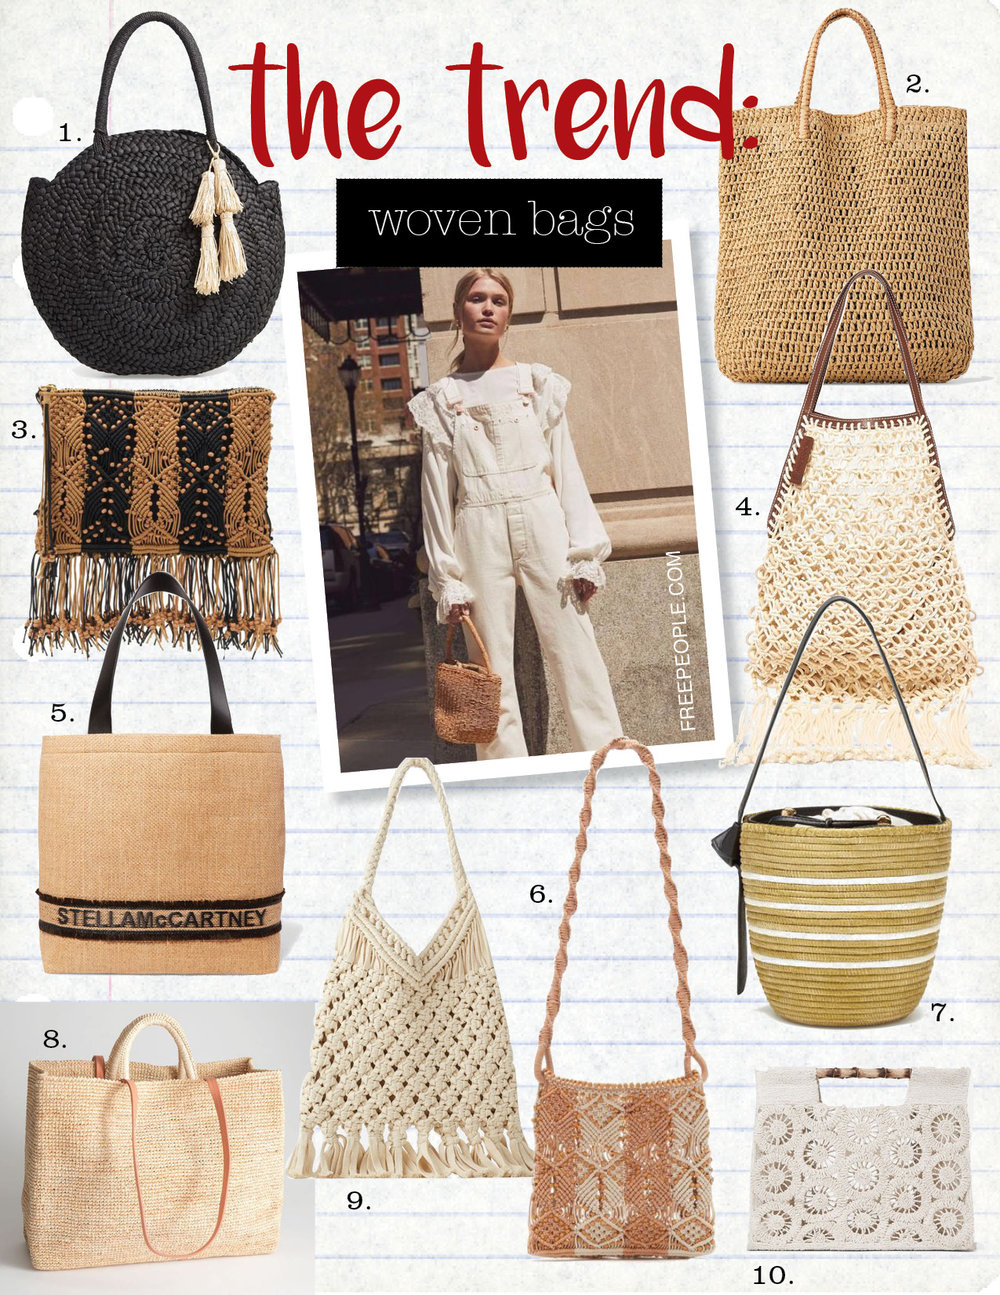 1. l space beach weekend straw tote, $79,  nordstrom.com  2. zara woven paper shopper, $39,  zara.com  3. ulla johnson evy clutch, $325,  ullajohnson.com  4. jw anderson leather-trimmed macrame tote, $1713,  matchesfashion.com  5. stella mccartney small faux leather-trimmed raffia tote, $995,  net-a-porter.com  6. ulla johnson april crossbody, $350,  ullajohnson.com  7. cesta collective ficelle multi stripe bucket bag, $395,  goop.com  8. and other stories large woven straw tote, $79,  stories.com  9. zara crochet shopper bag, $59,  zara.com  10. zara bamboo handle shopper bag, $49,  zara.com